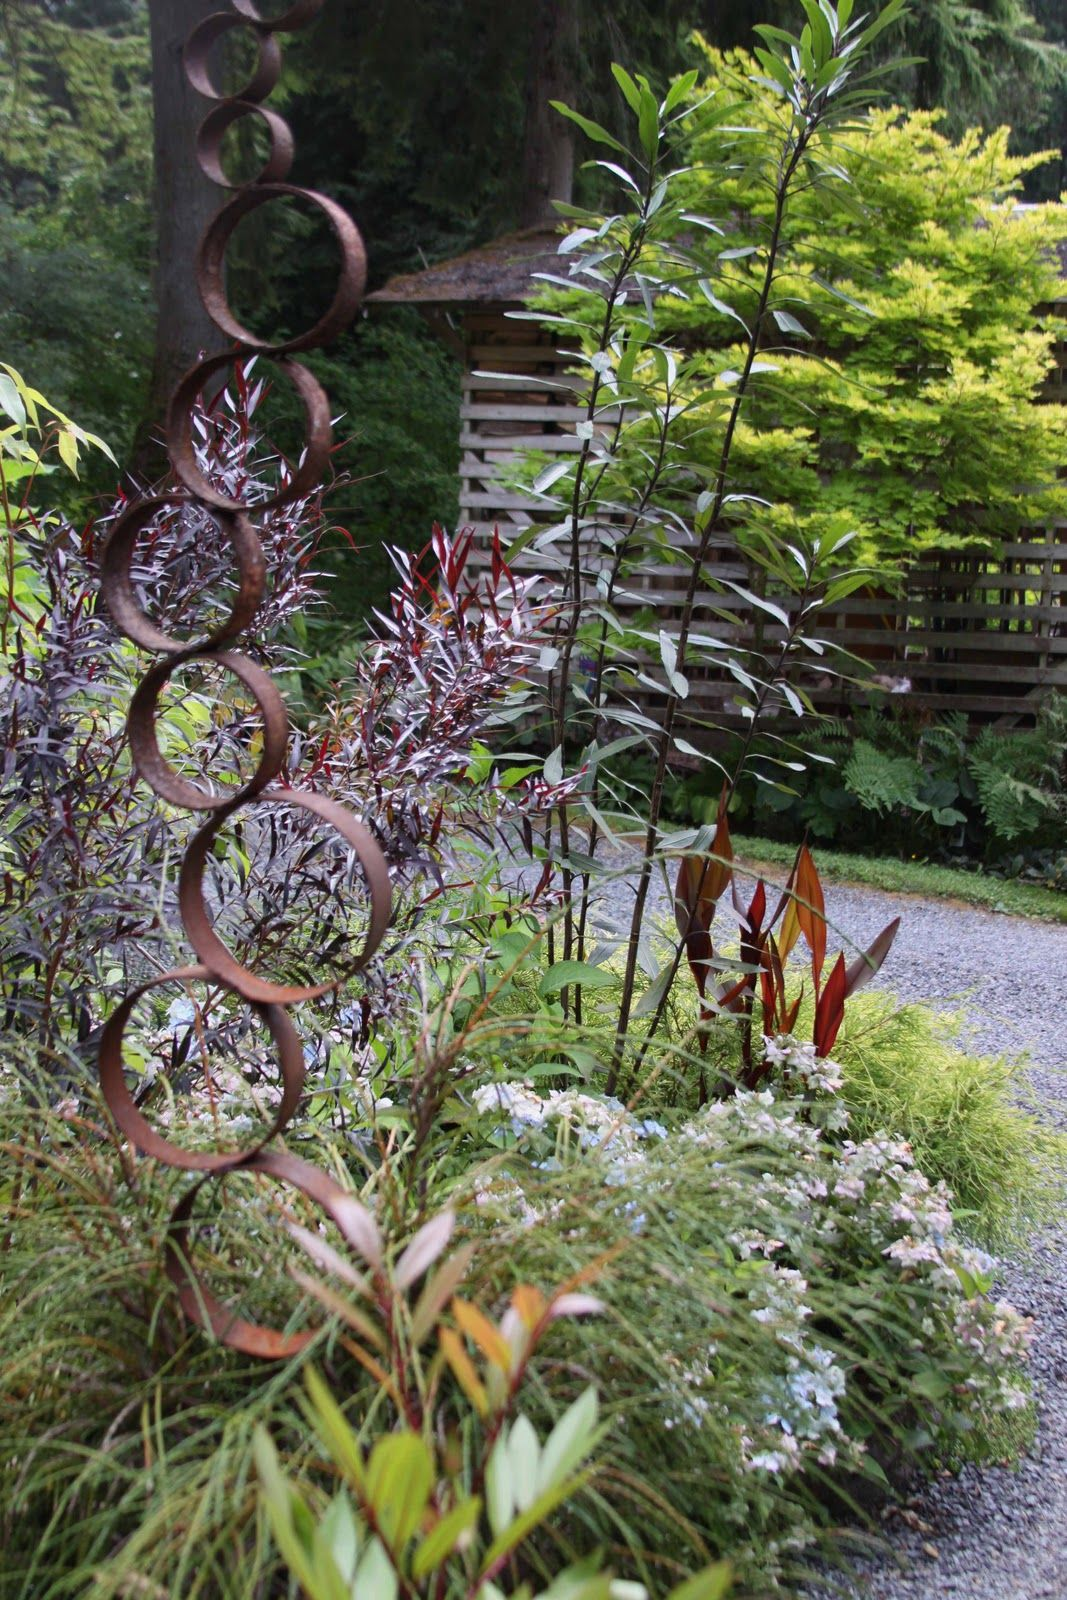 How I love good old rusty iron in the garden - can't wait to